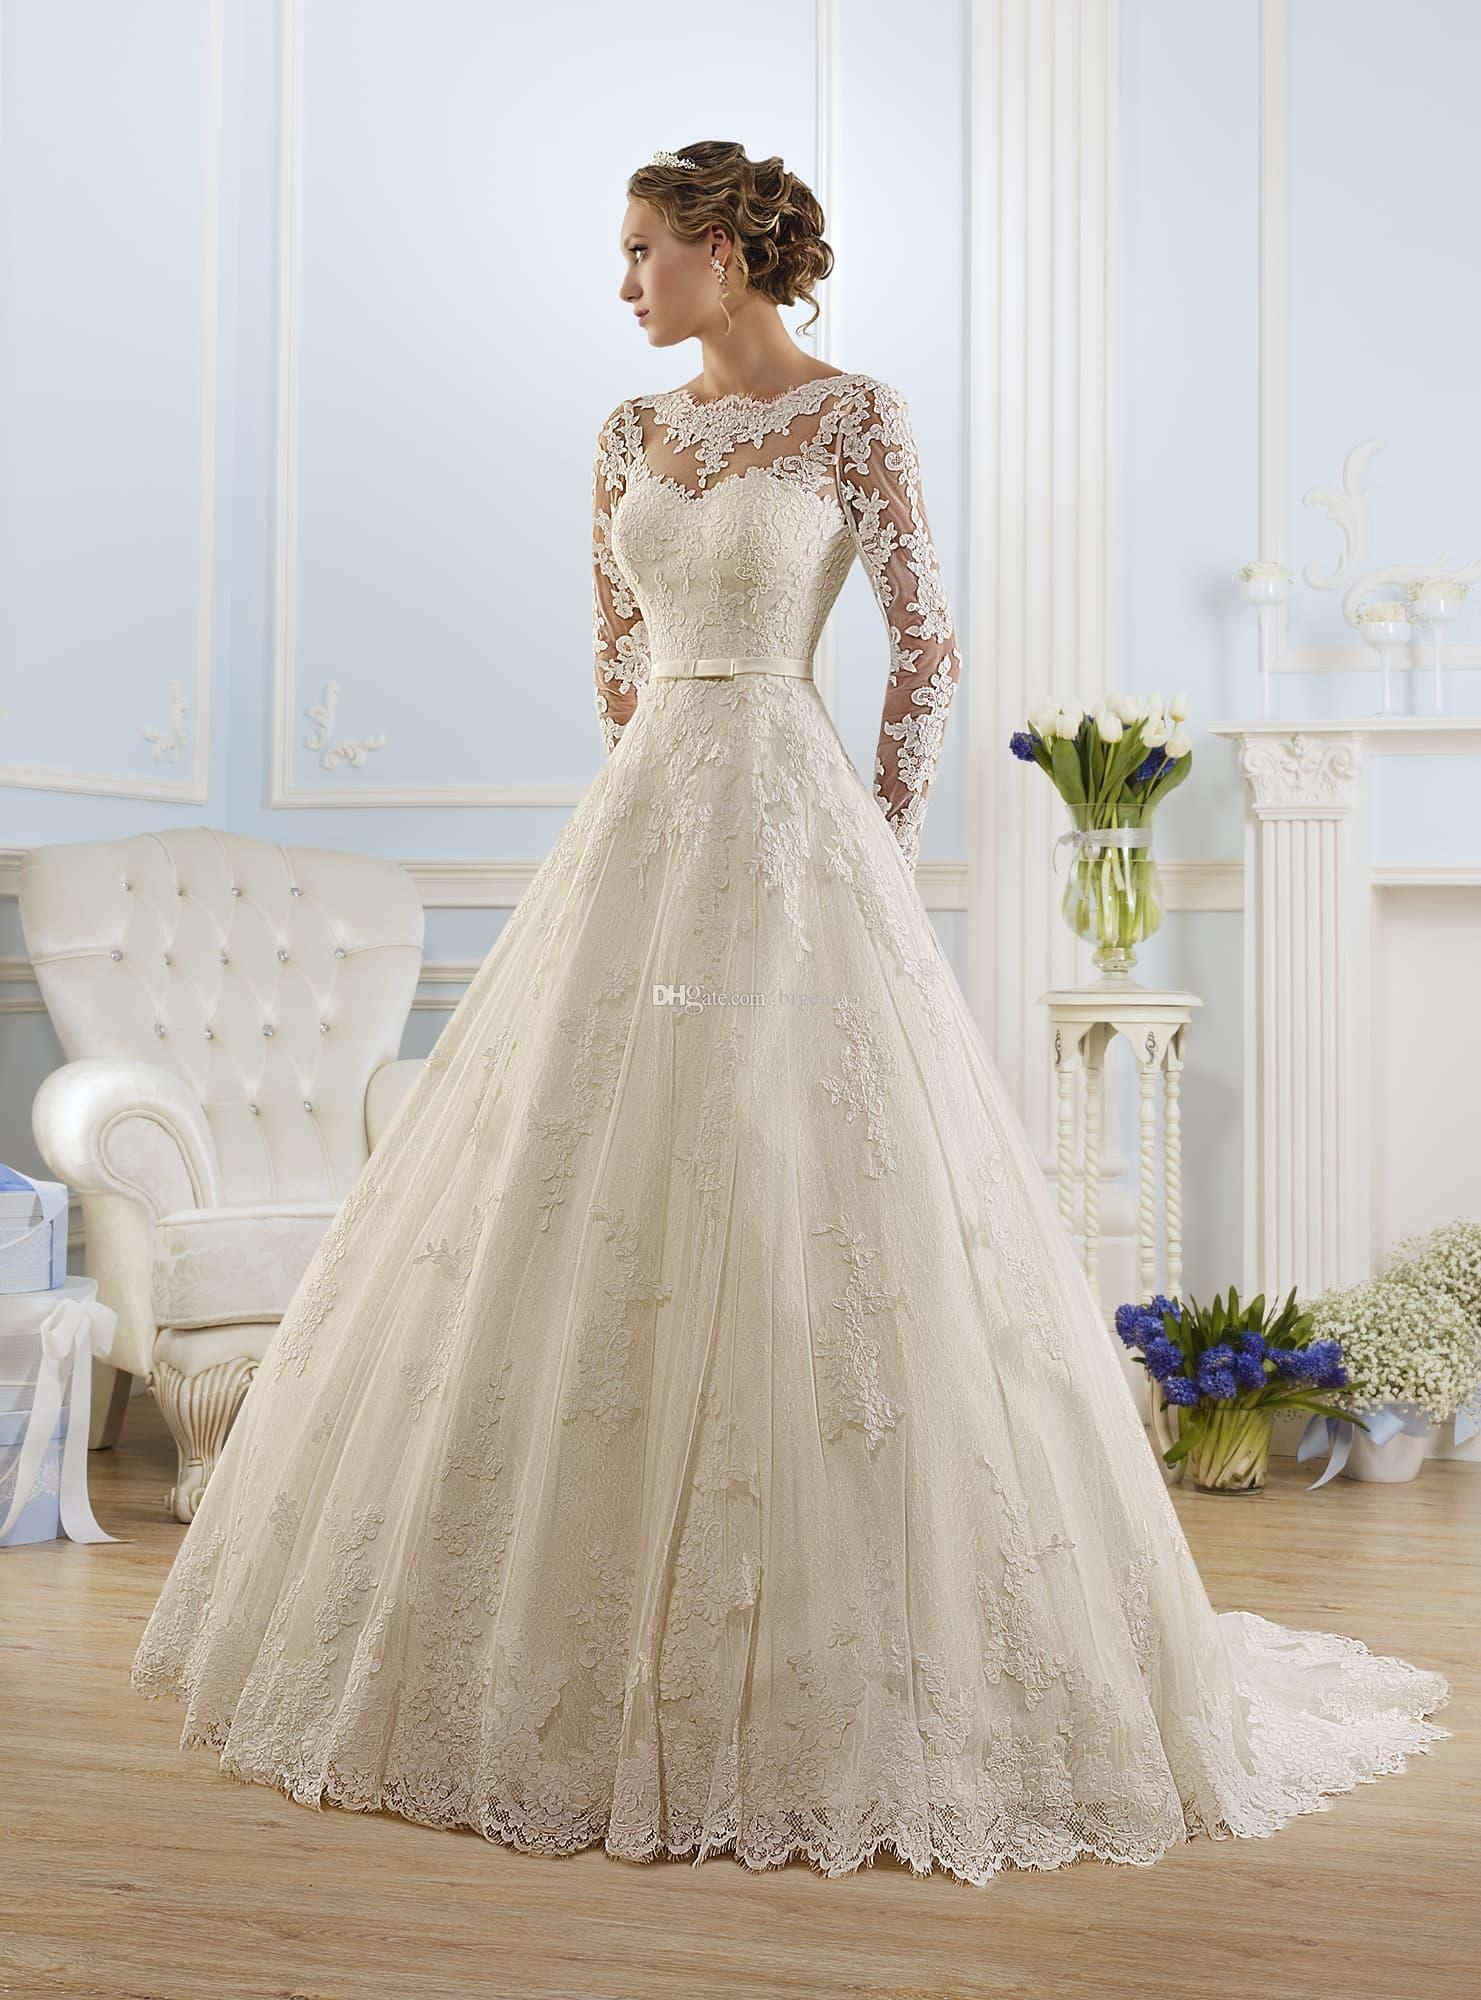 Long Sleeves Wedding Dress With Bow Sash Open Back Bridal Gown Wedding Dresses Wedding Dream Wedding Dresses